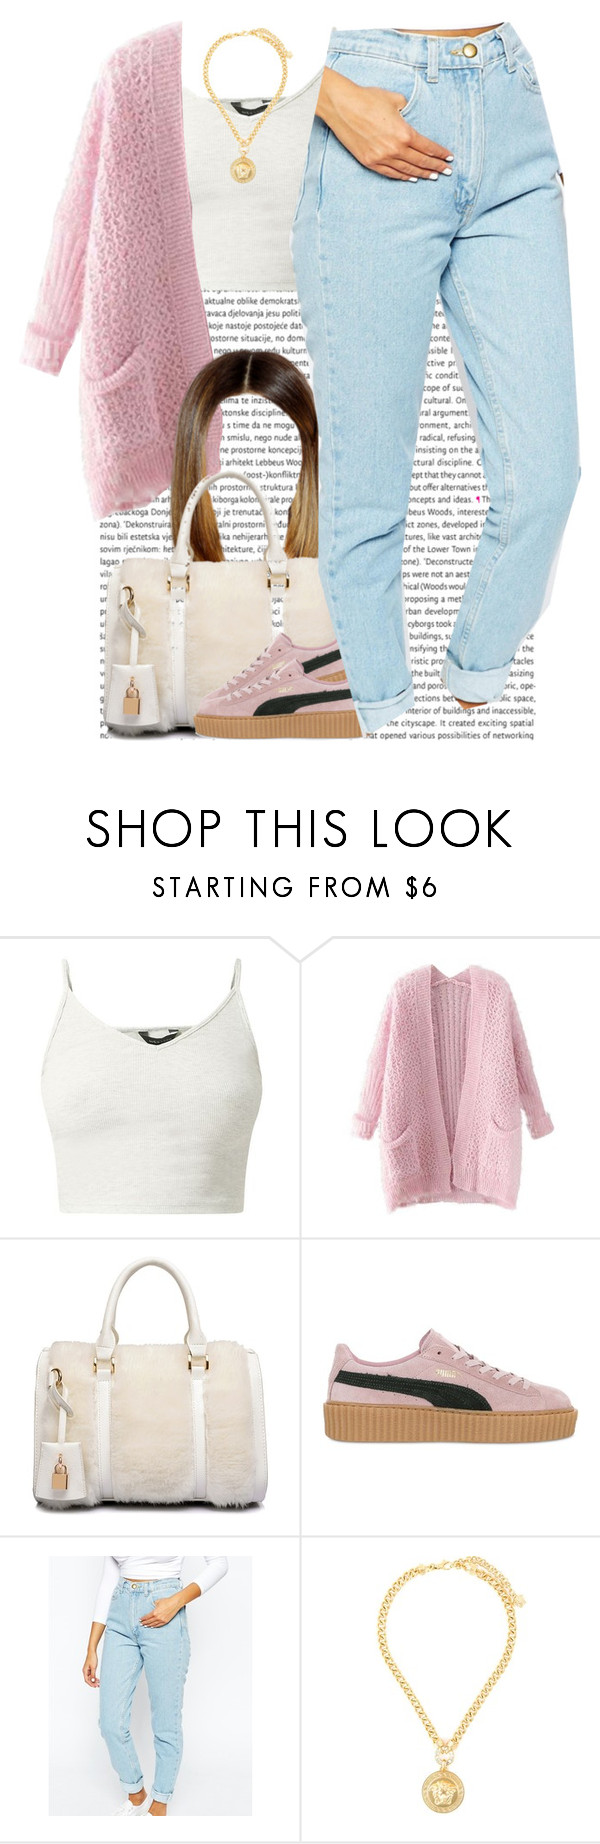 """December 21, 2k15"" by xo-beauty ❤ liked on Polyvore featuring Chicnova Fashion, Puma, American Apparel and Versace"